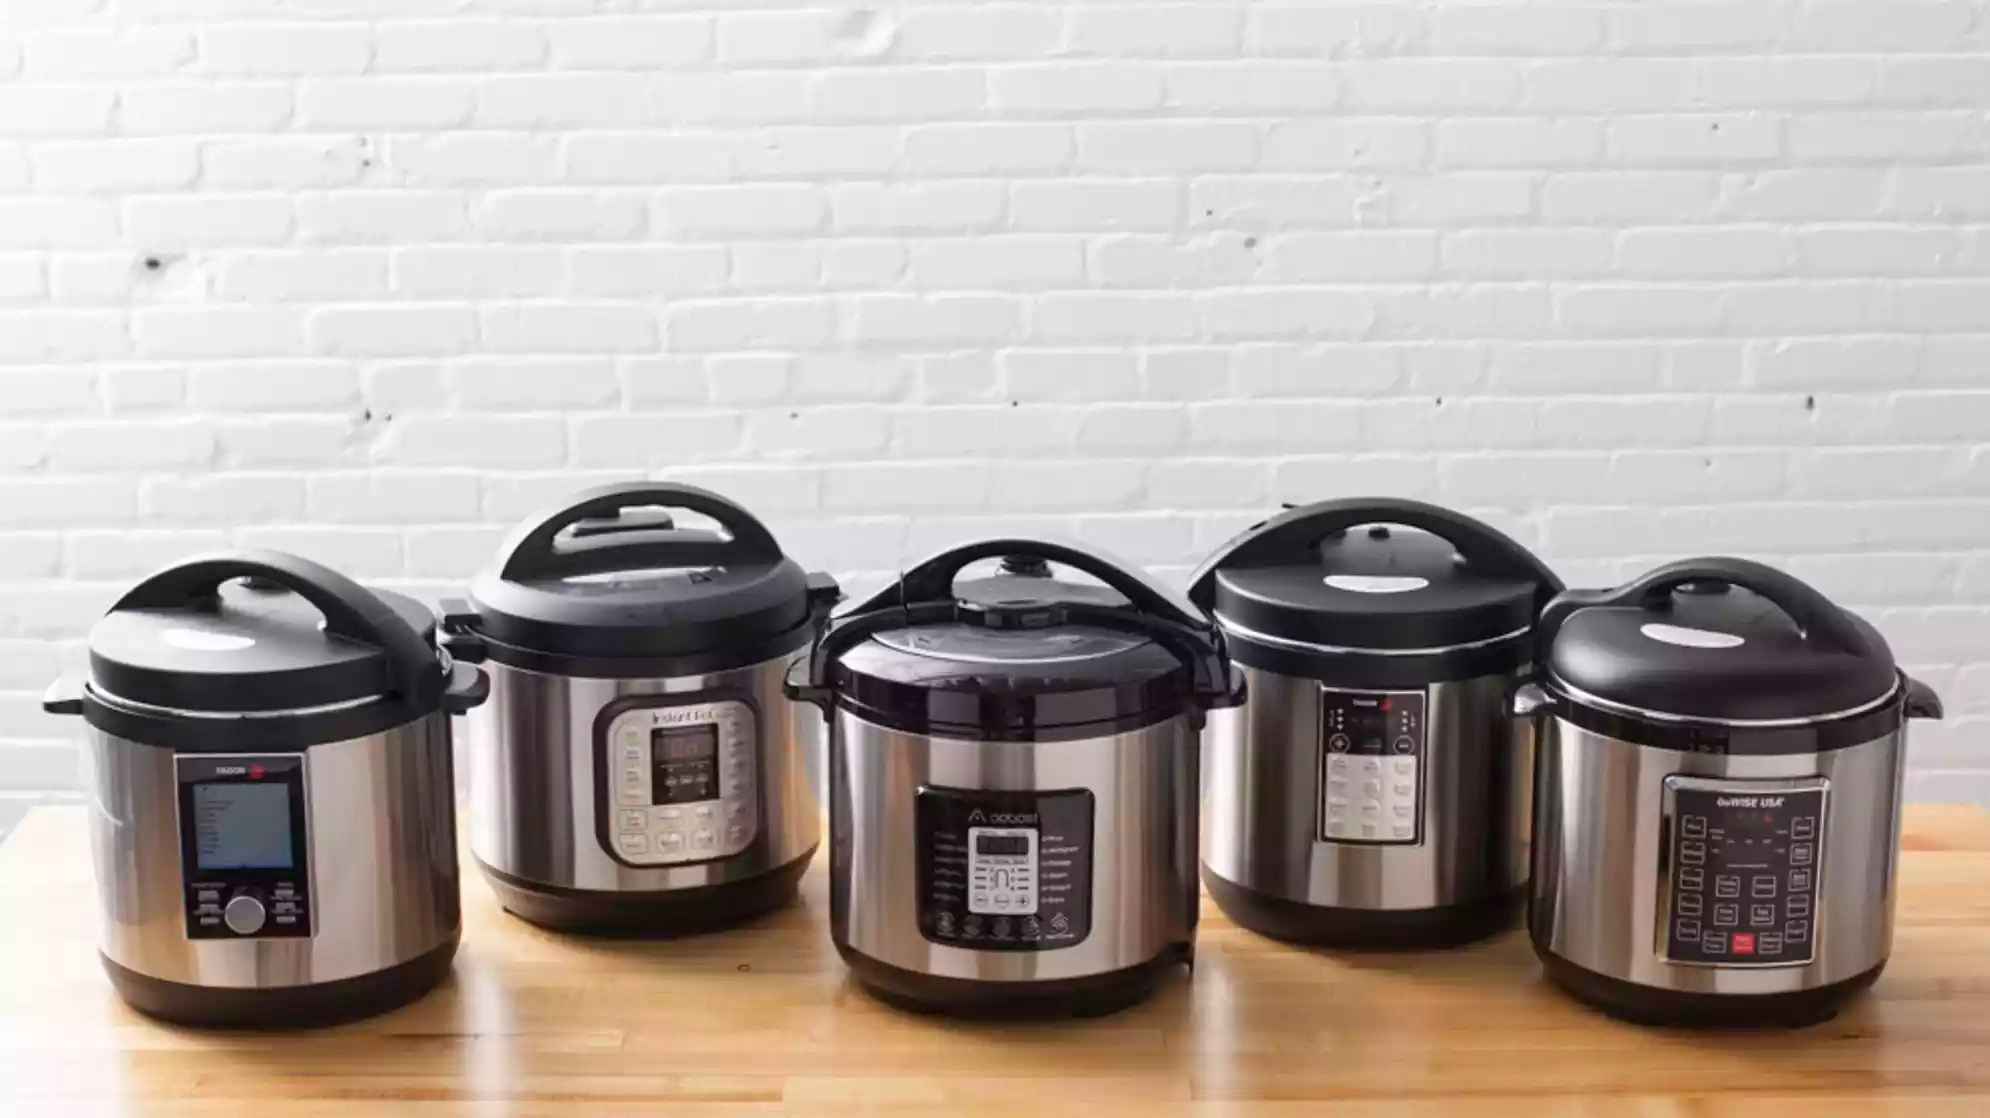 hight resolution of the instant pot is incredibly popular but is it really the best multicooker on the market